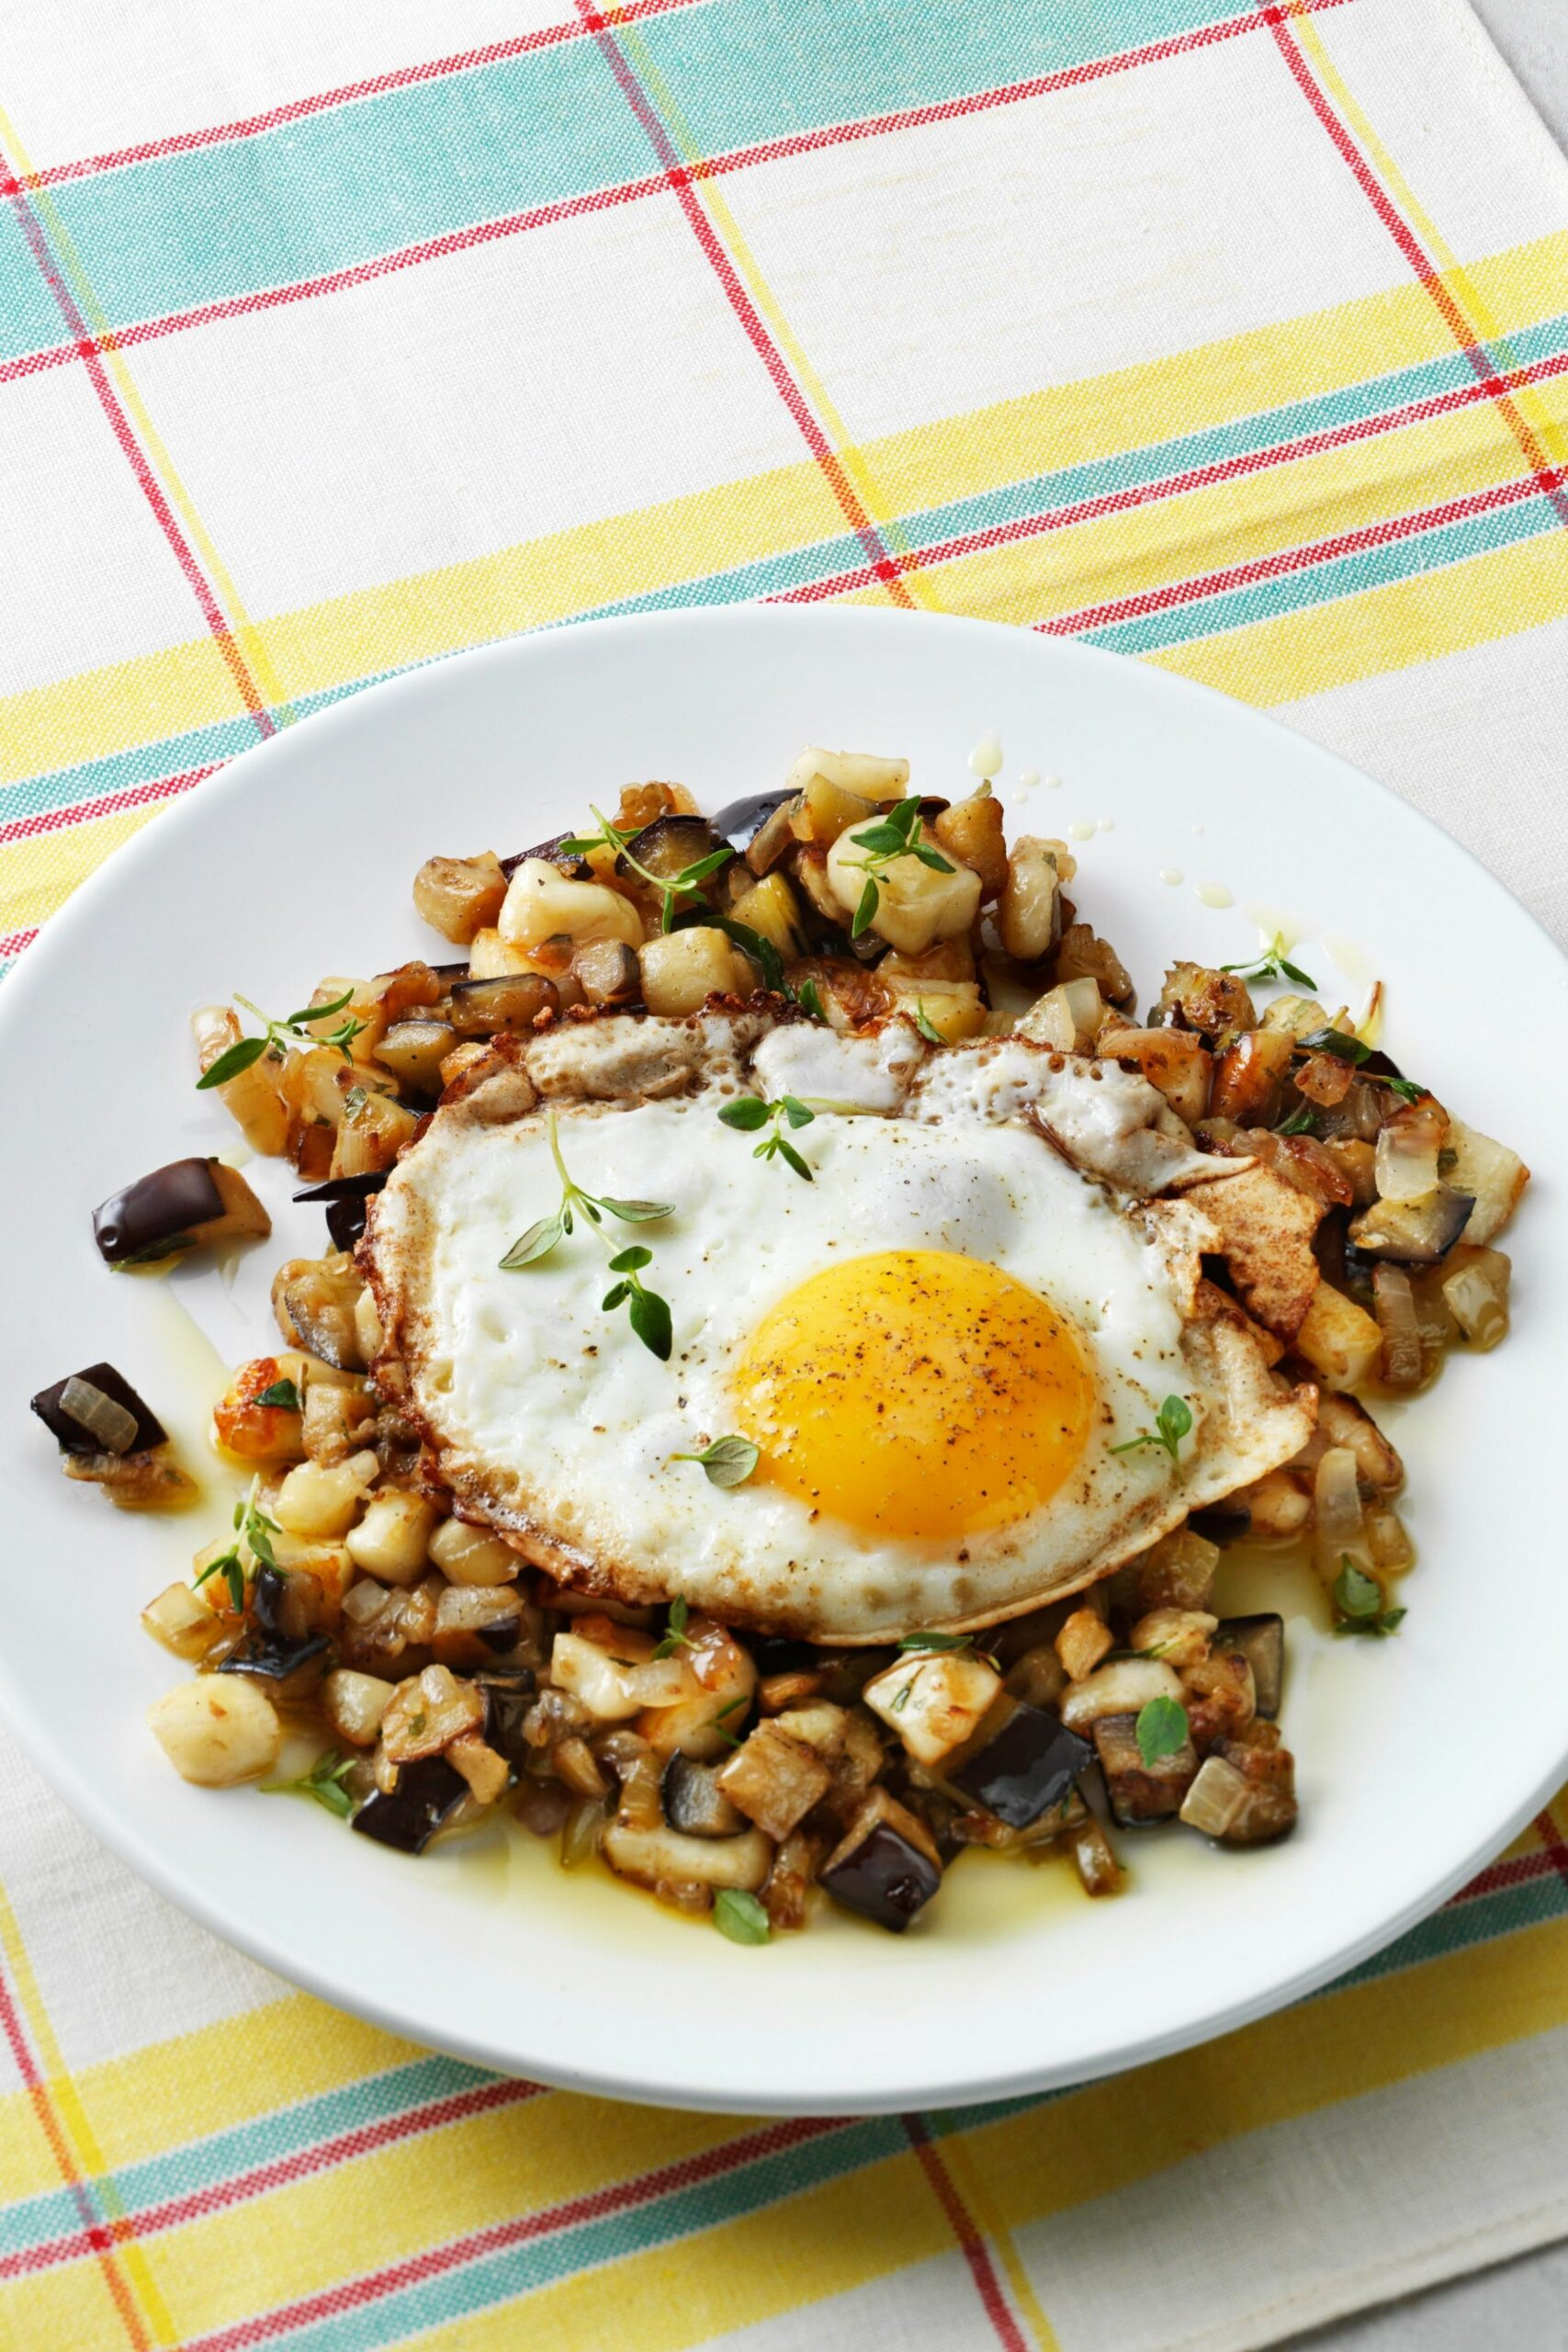 Low-carb eggplant hash with eggs - Recipe Eggplant Egg